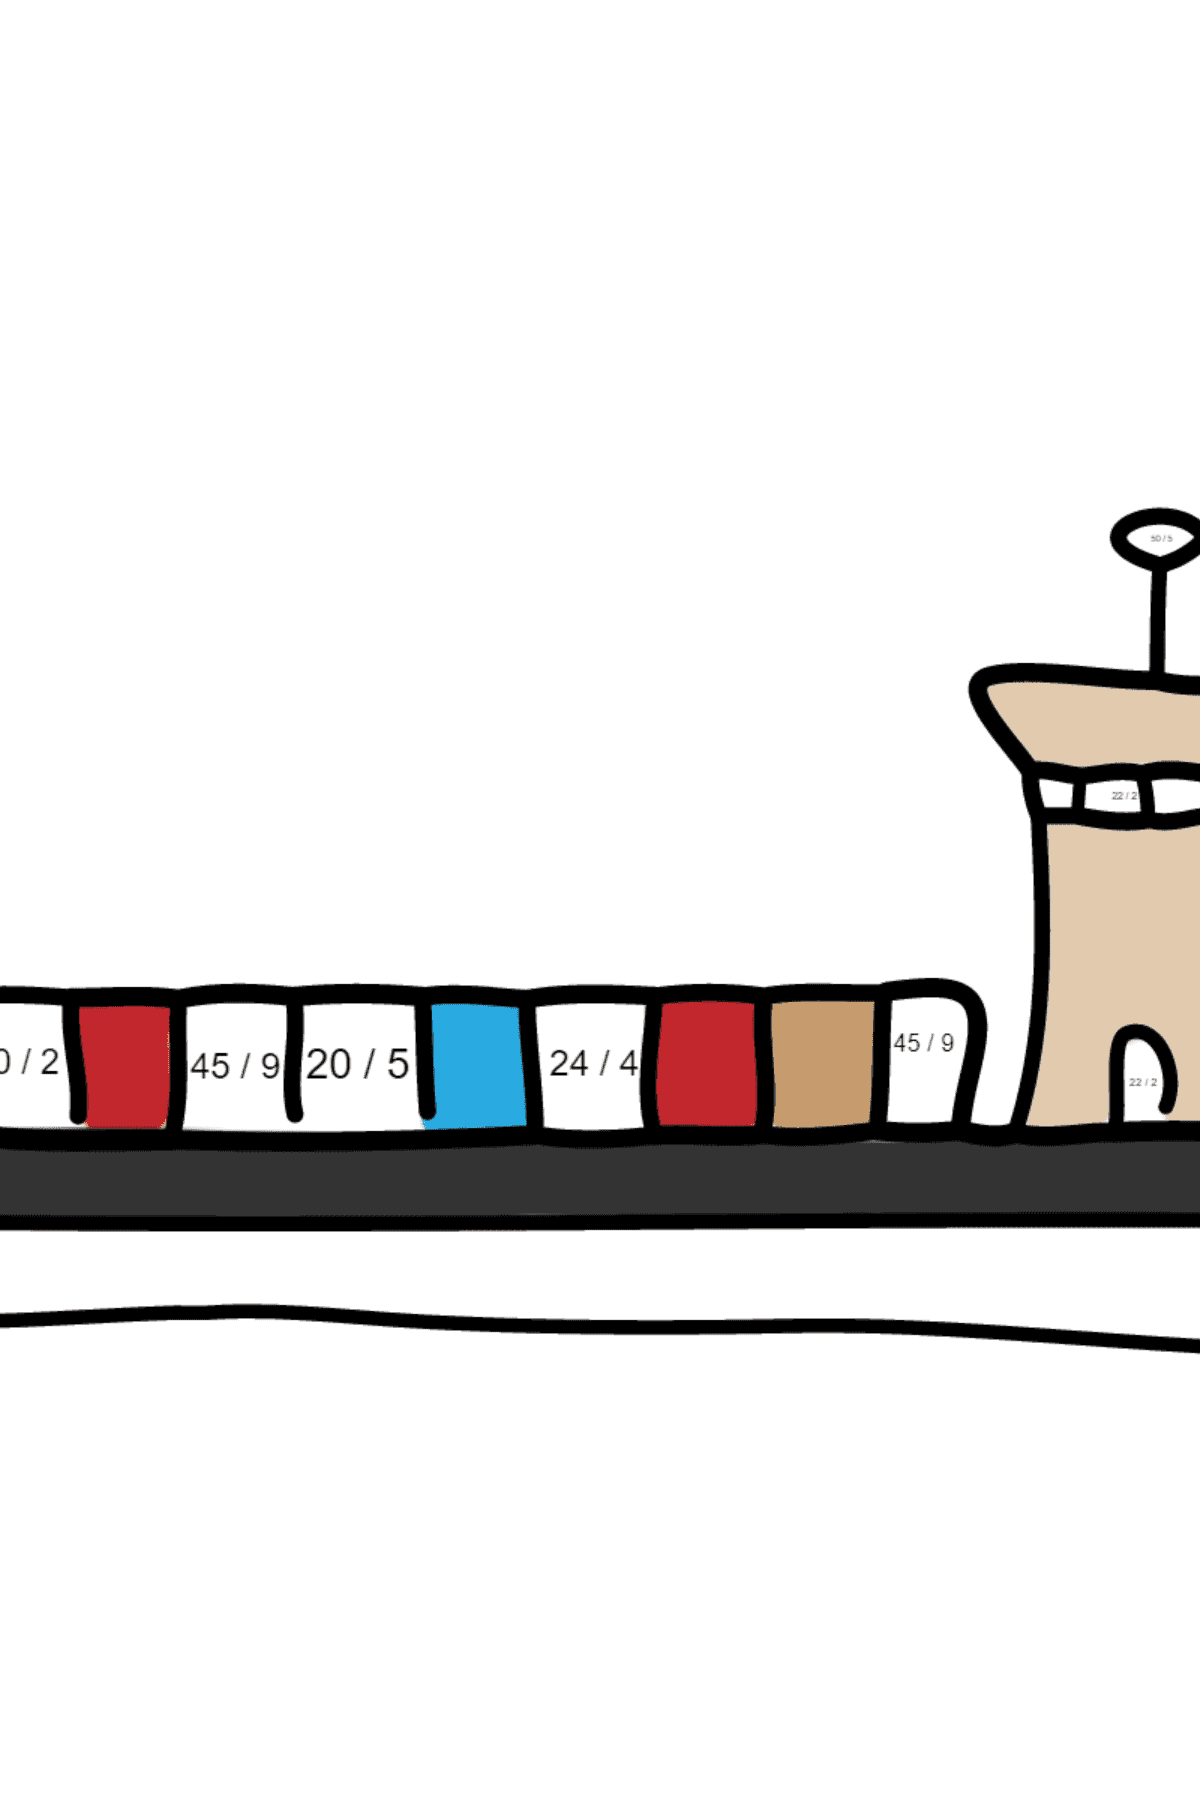 Coloring Page - A Dry Cargo Barge - Math Coloring - Division for Kids